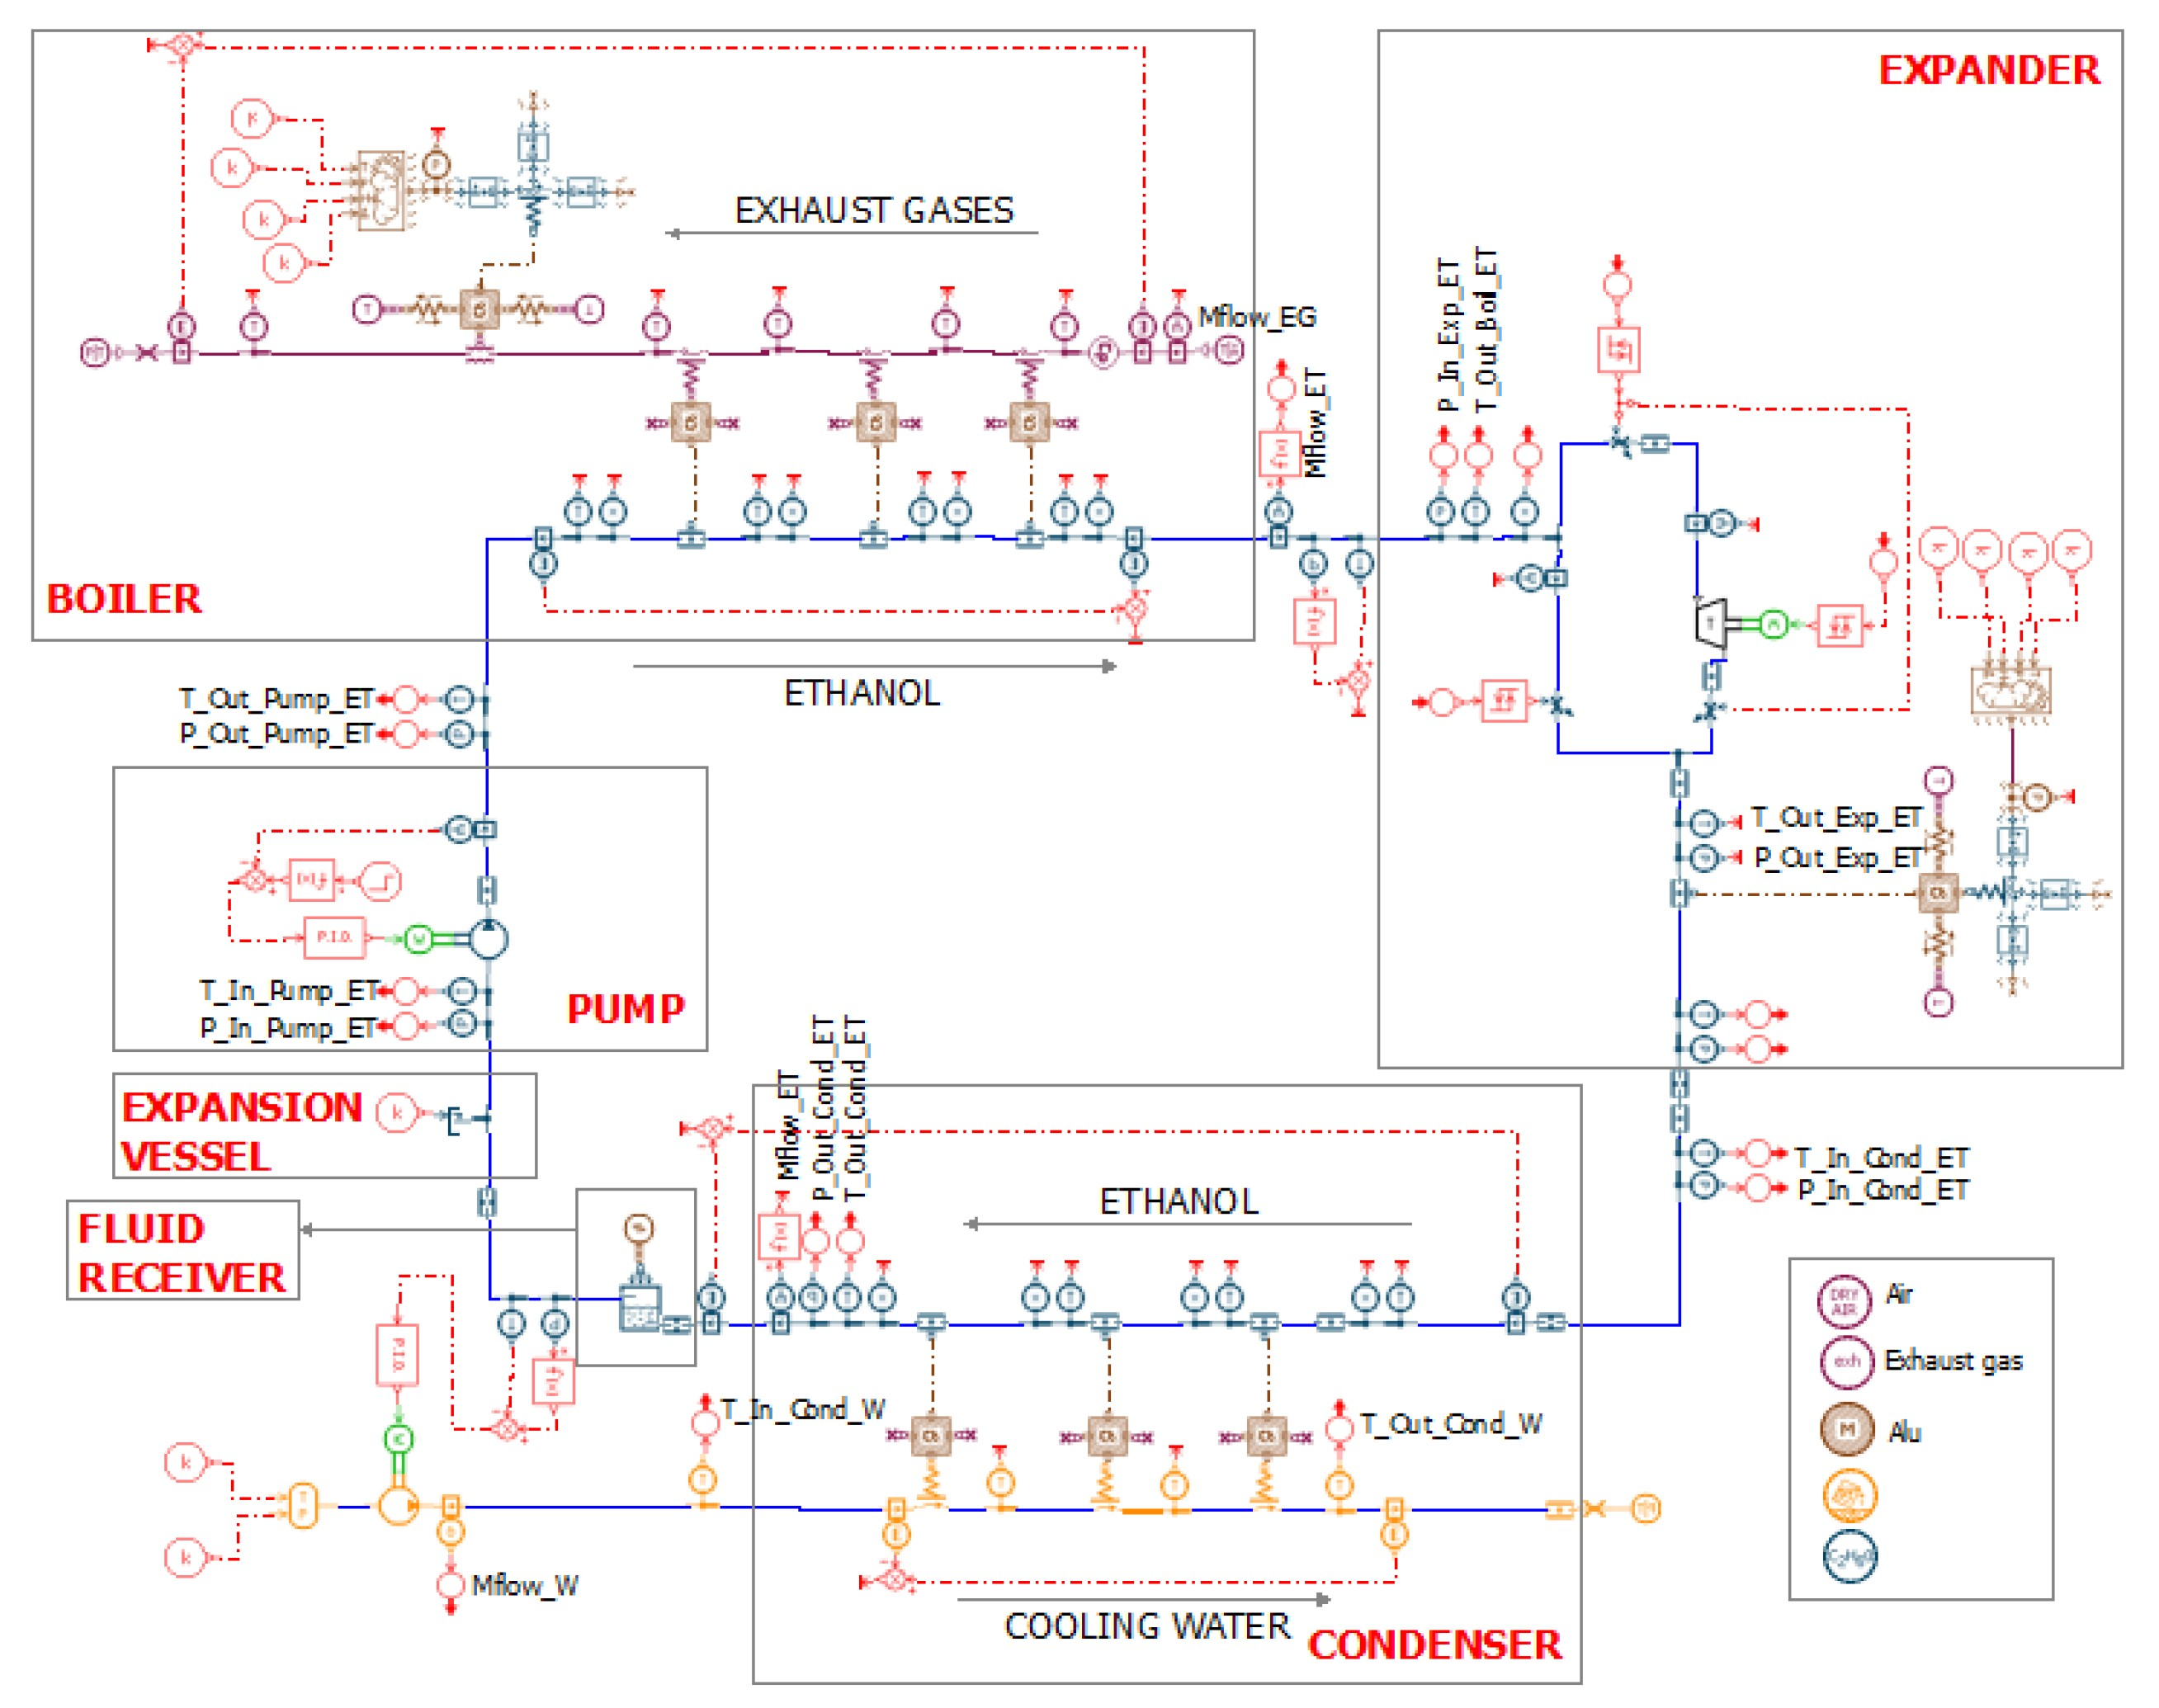 How Does A Combustion Engine Work Diagram Energies Free Full Text Of How Does A Combustion Engine Work Diagram